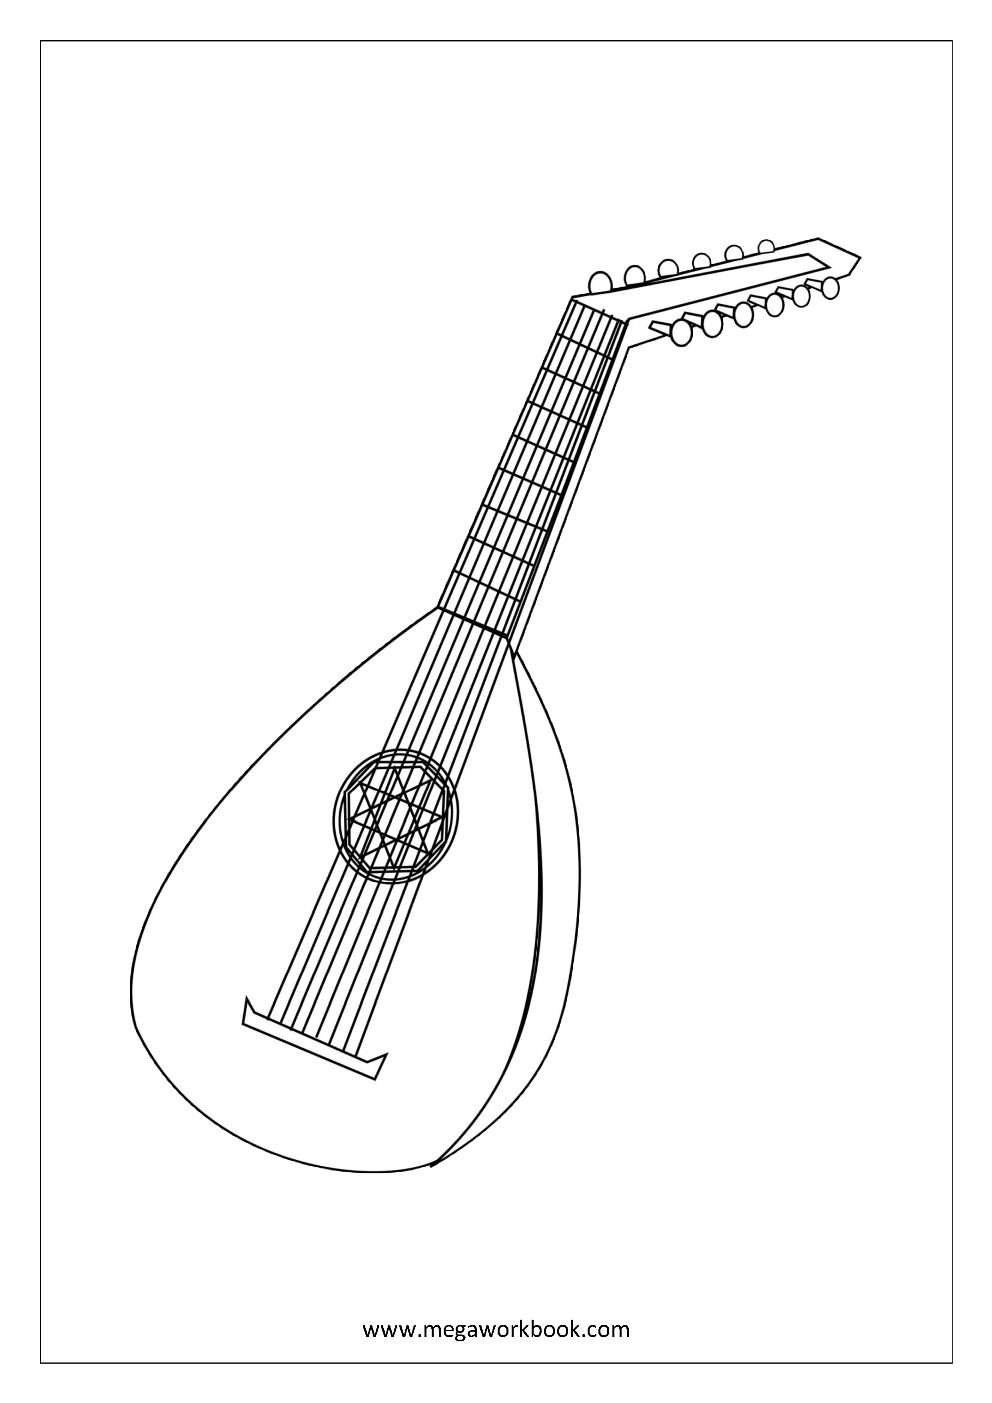 instrument coloring pages - musical instruments coloring pages